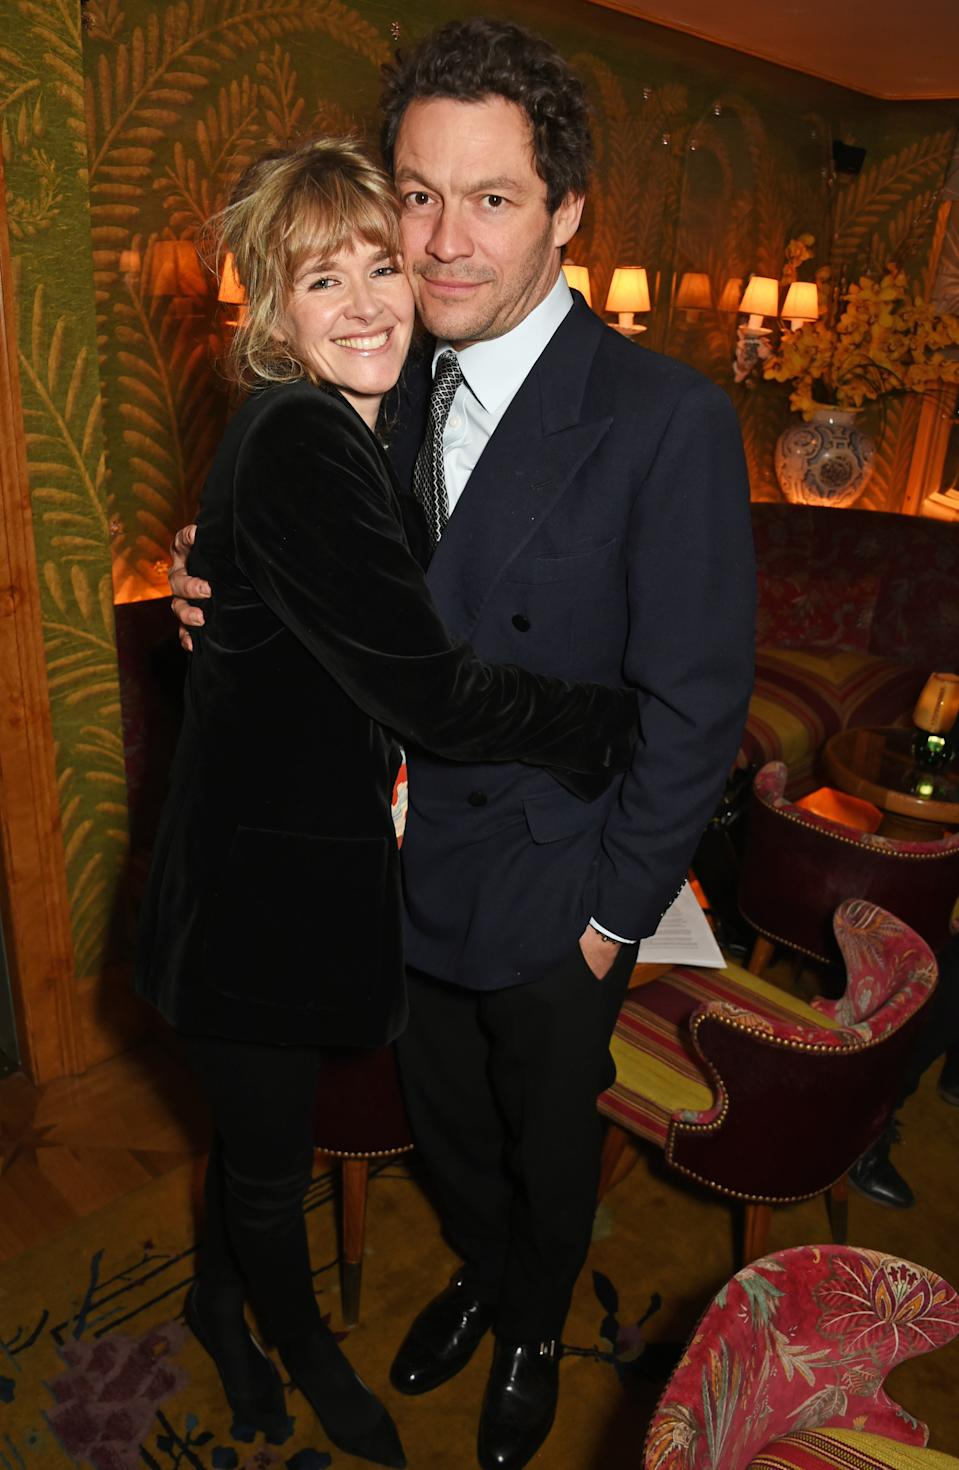 Catherine and Dominic attend the Farms Not Factories #TurnYourNoseUp at Pig Factories benefit dinner 'Upstairs' at 5 Hertford Street on January 31, 2017 in London, England.